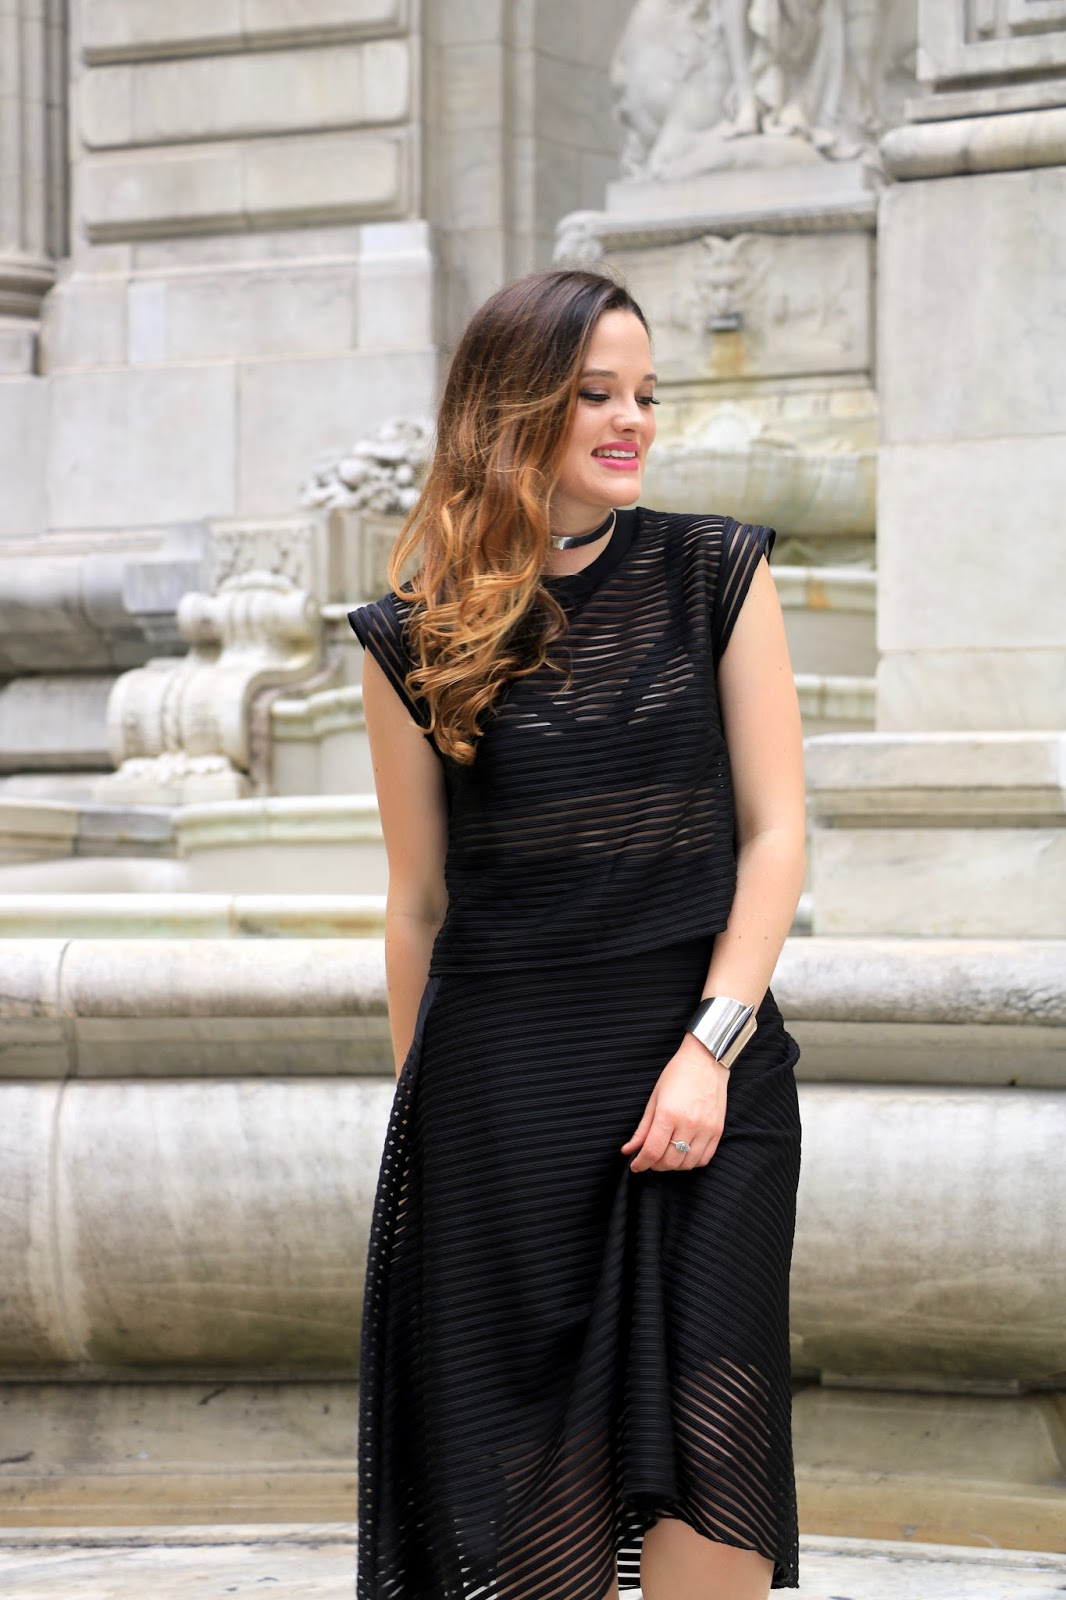 NYC fashion blogger Kathleen Harper of Kat's Fashion Fix pics